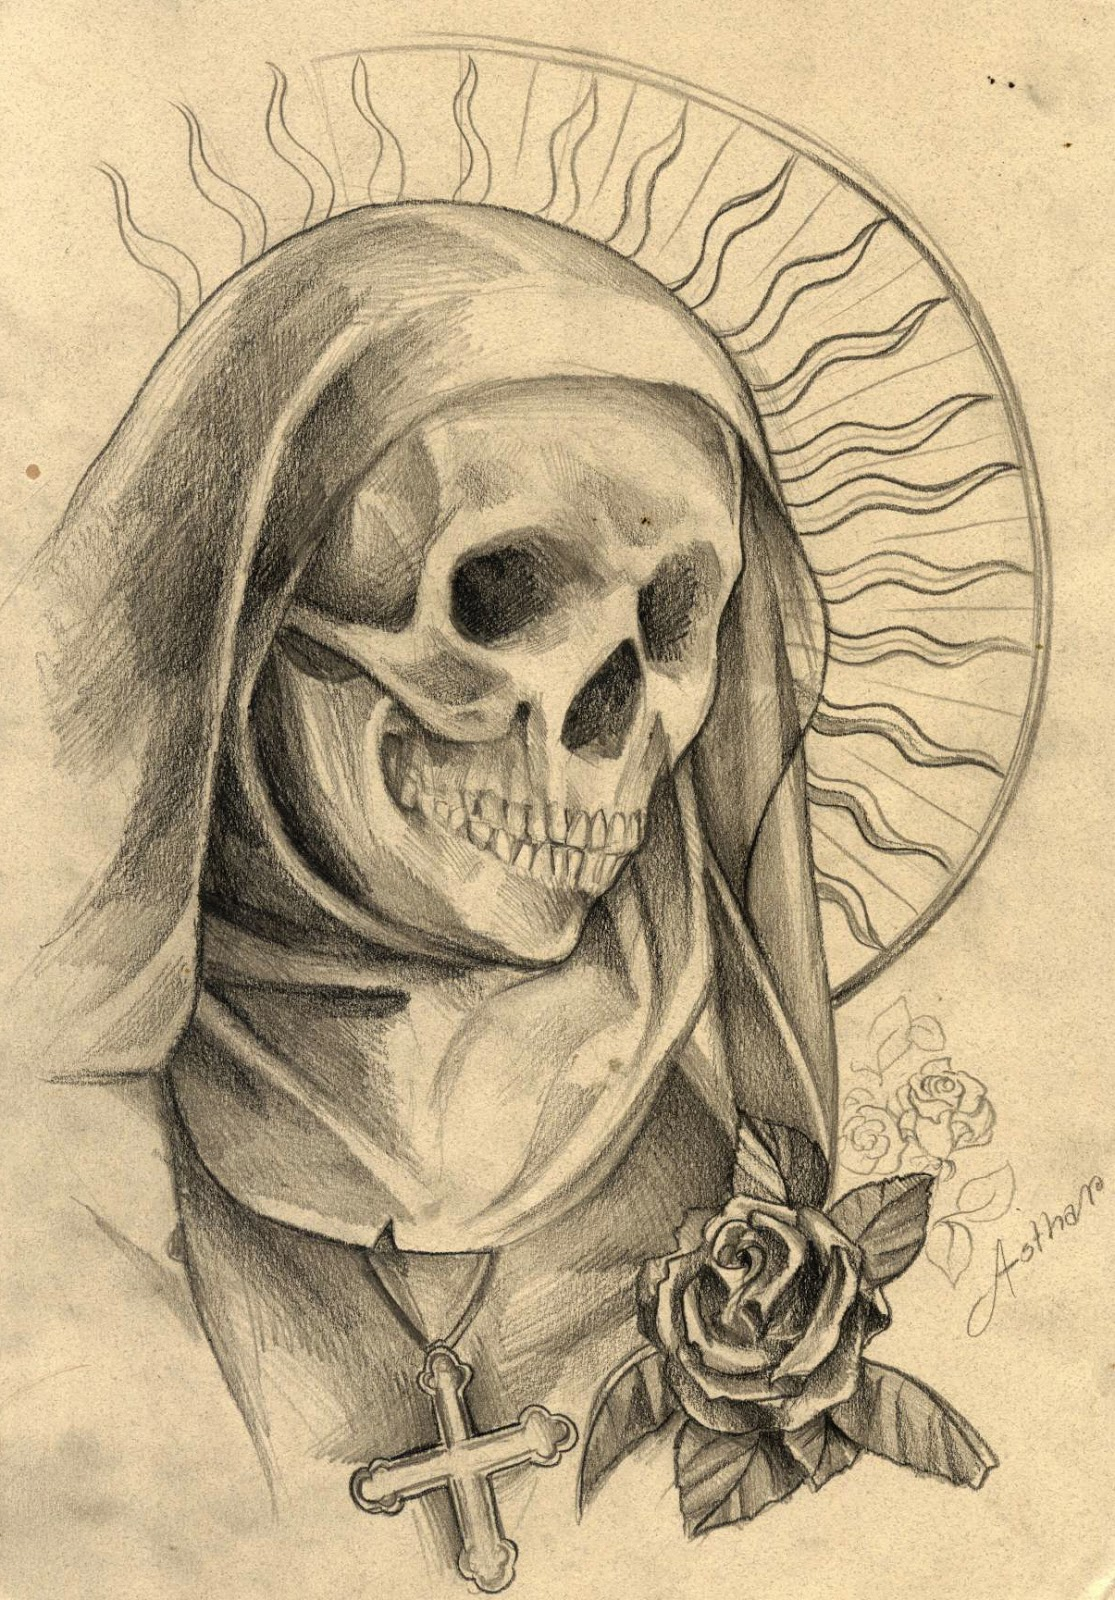 Santa Muerte Sketch Pictures To Pin On Pinterest  TattoosKid